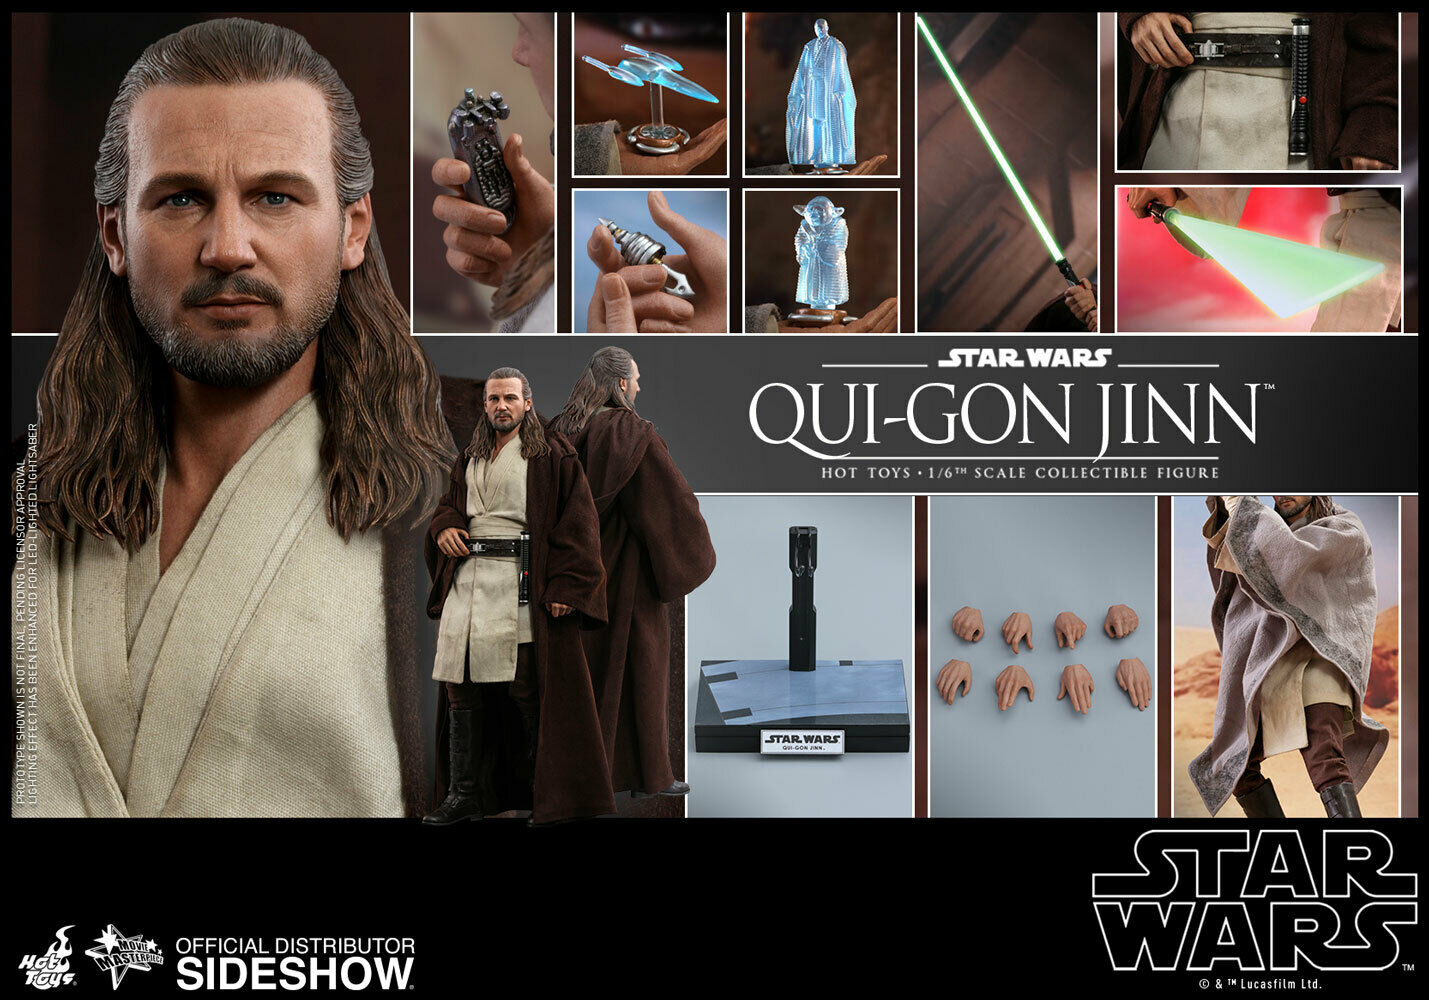 Hot Toys Star Wars Qui-Gon Jinn 1:6 Scale Figure Jedi Master Liam Neeson MMS525 on eBay thumbnail